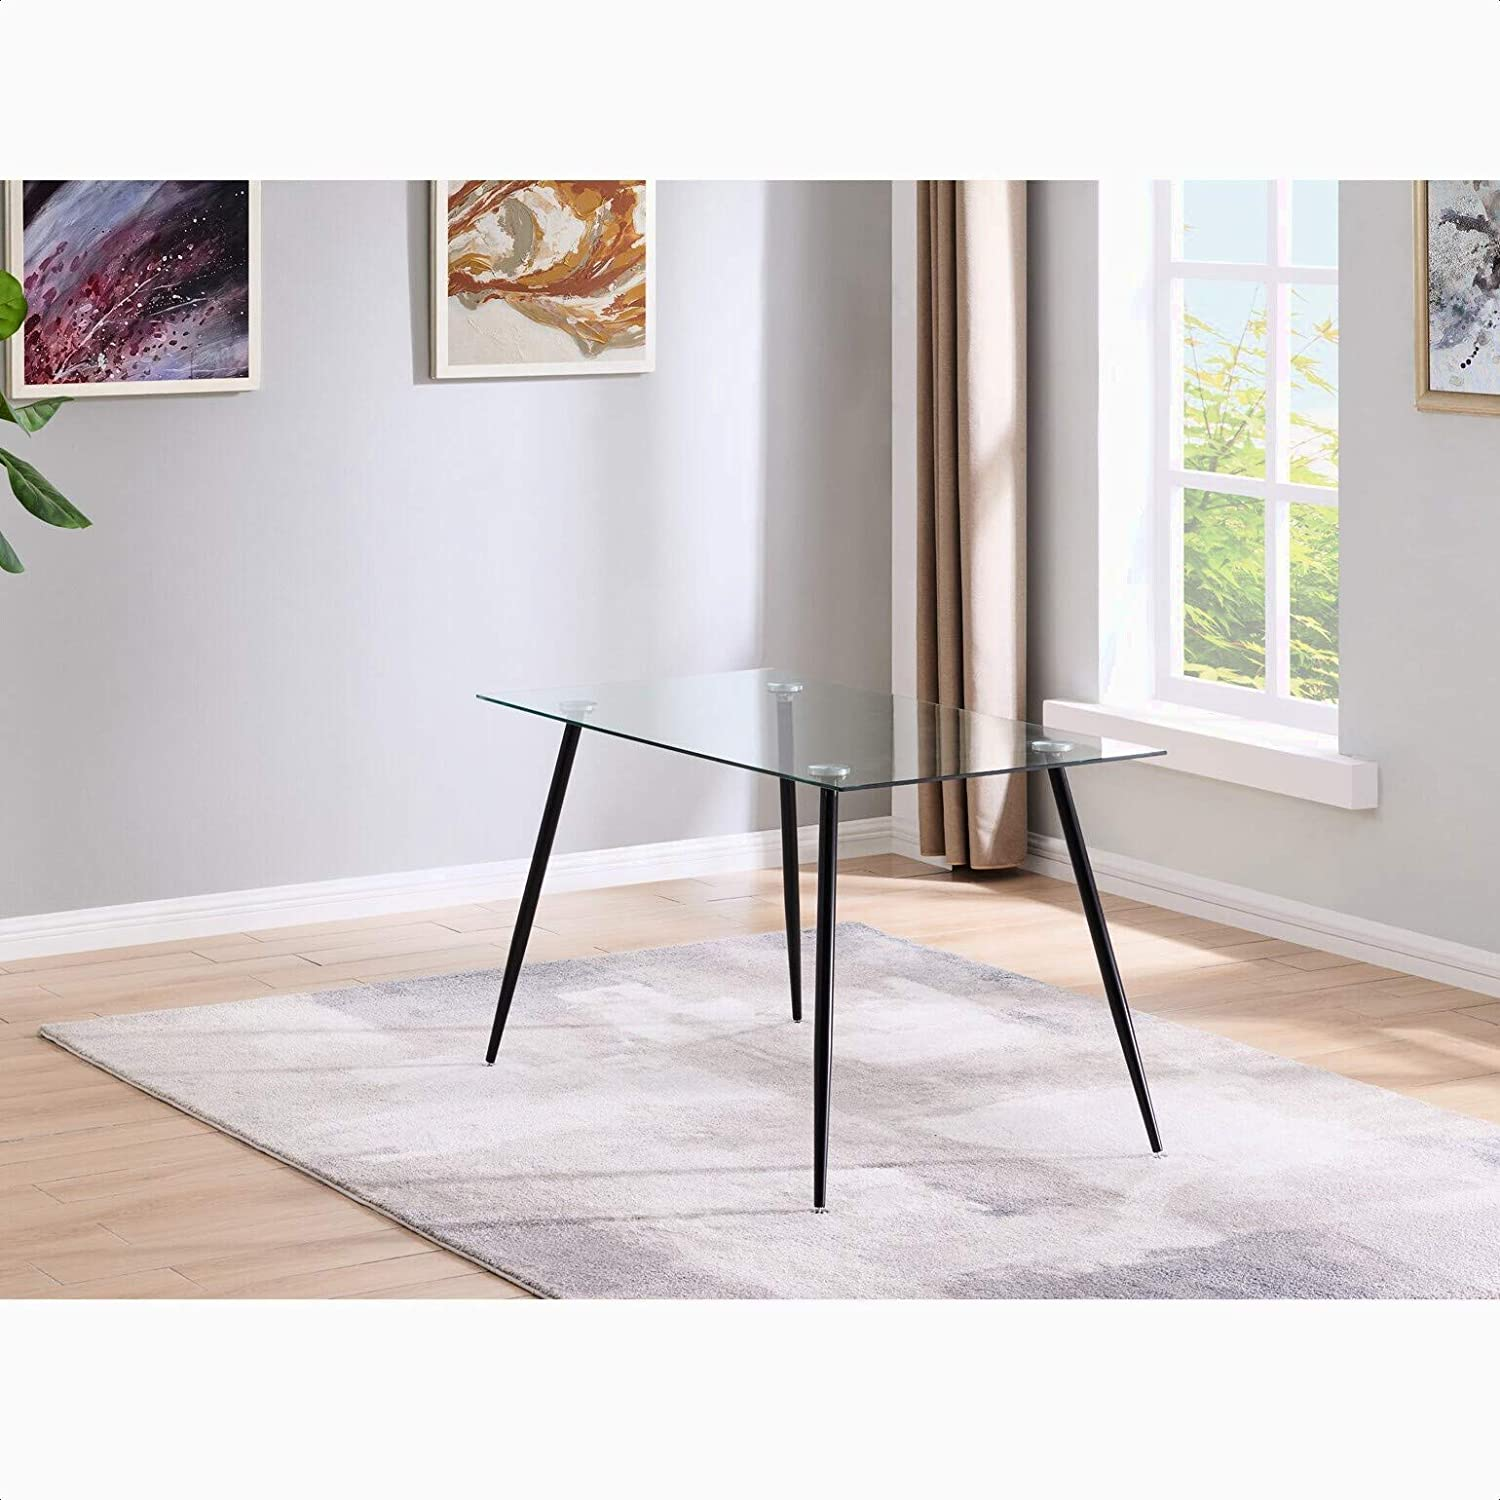 OFFicial Saraghna Bar Height Max 62% OFF Dining Table Included: Tables Yes Mat Base